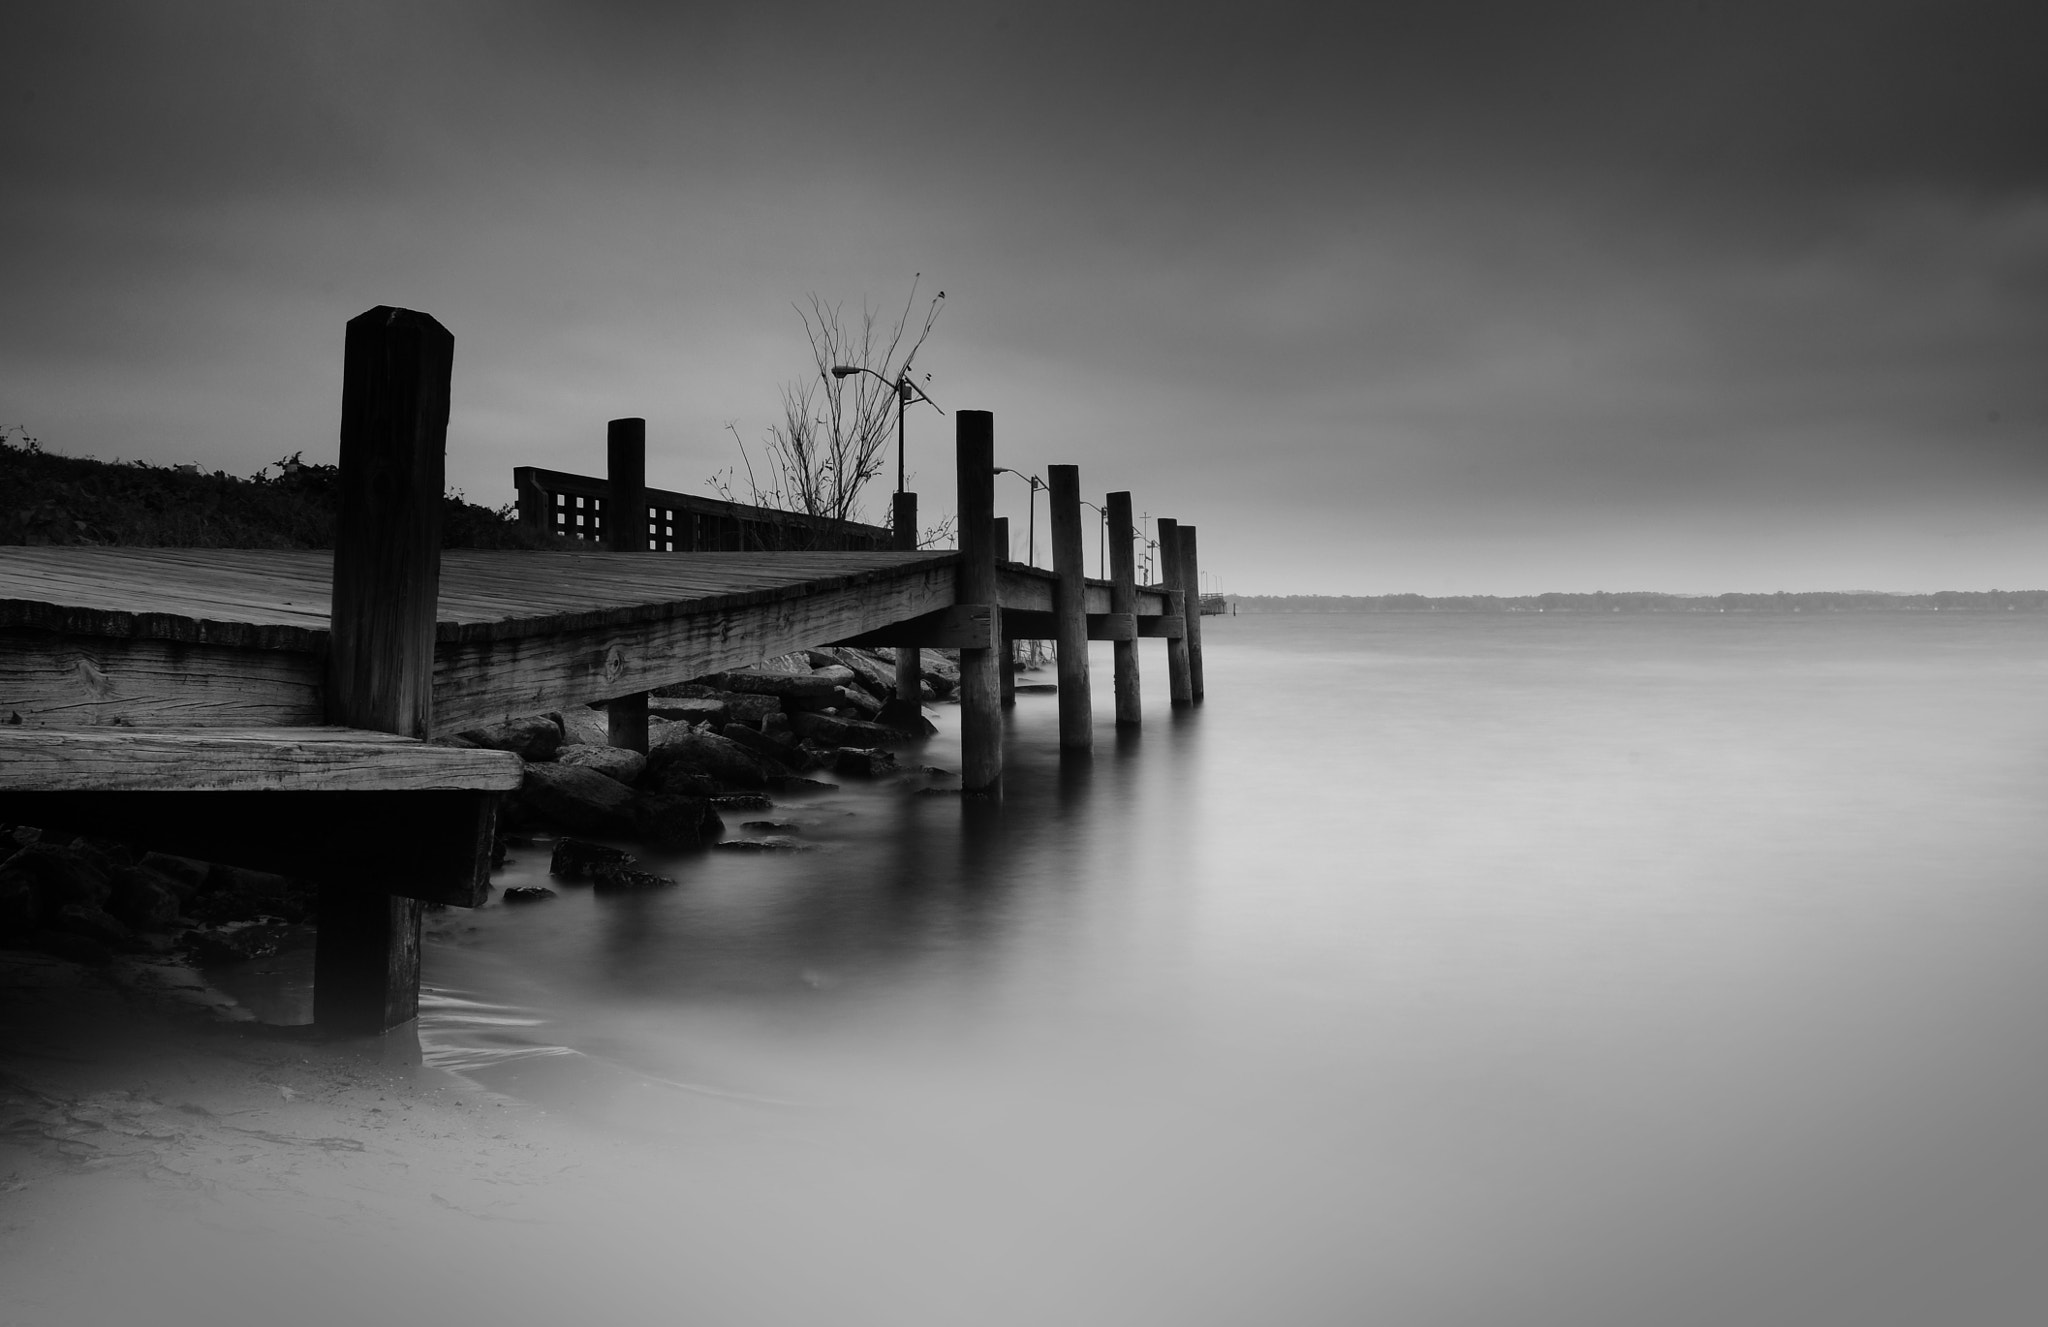 Photograph The Bent Dock by Enkased  on 500px